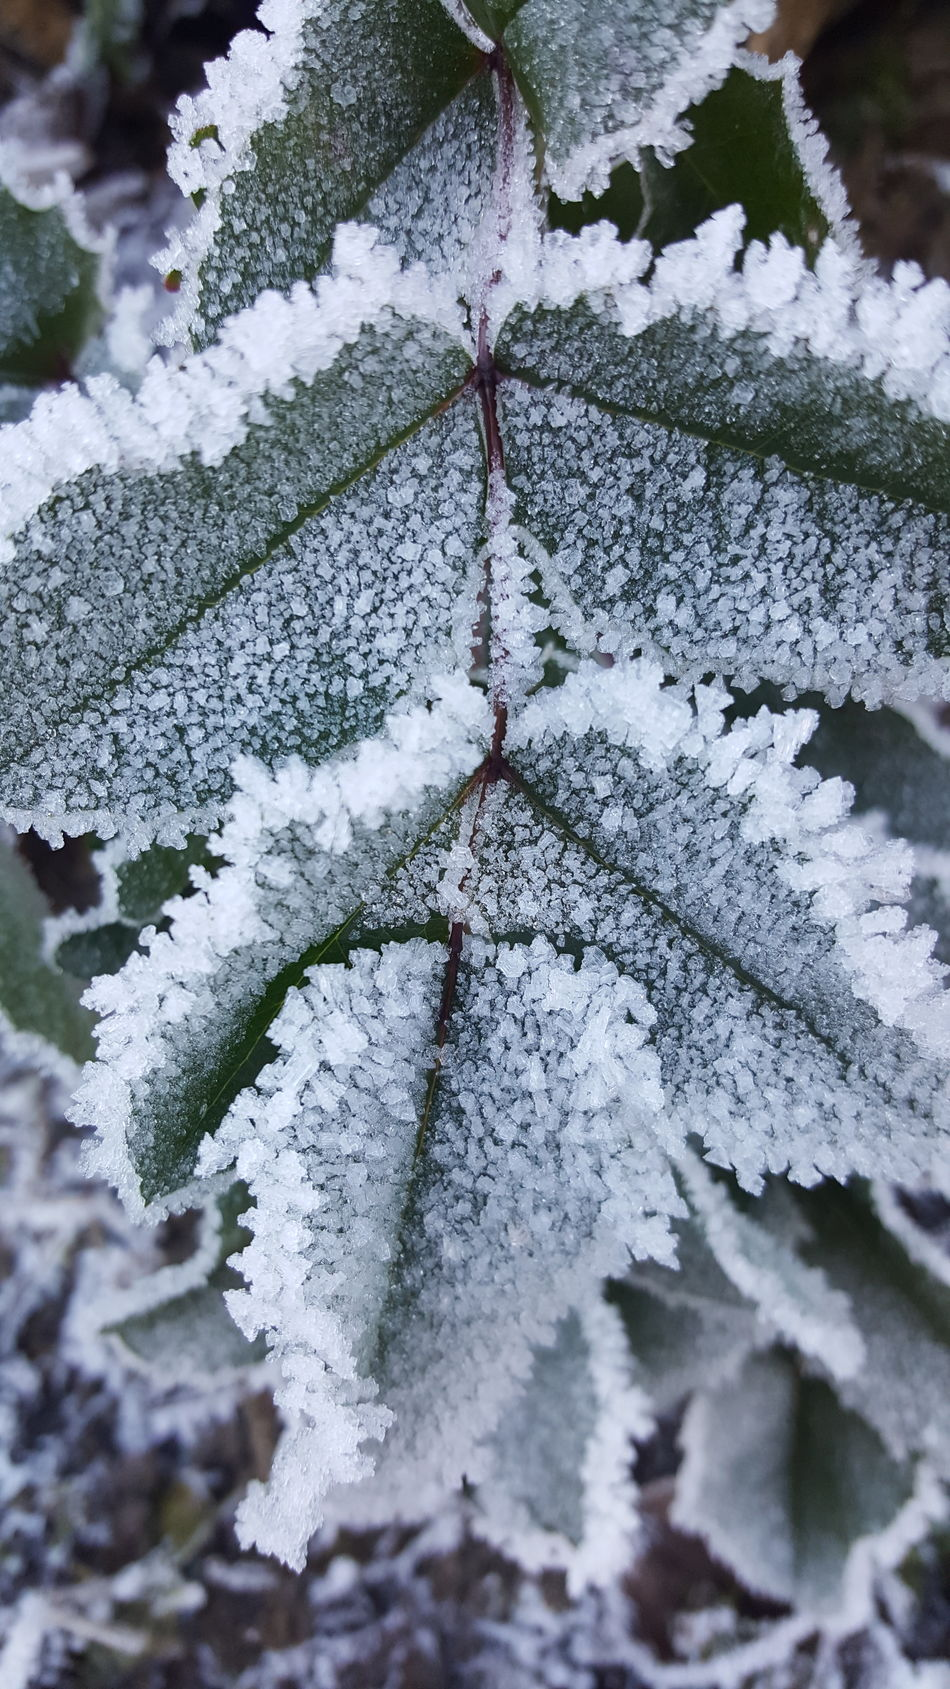 Leafs Icy Icy Wonderland Icy Day Icy Morning Ice Cristal Winter Wintertime Winter_collection Mourning Card Card Design Outdoors Art Photography Outdoor Photography Cold Day Beauty In Nature Rural Scene Focus On Foreground No People Close-up Nature Day Blue Nature_collection Detail